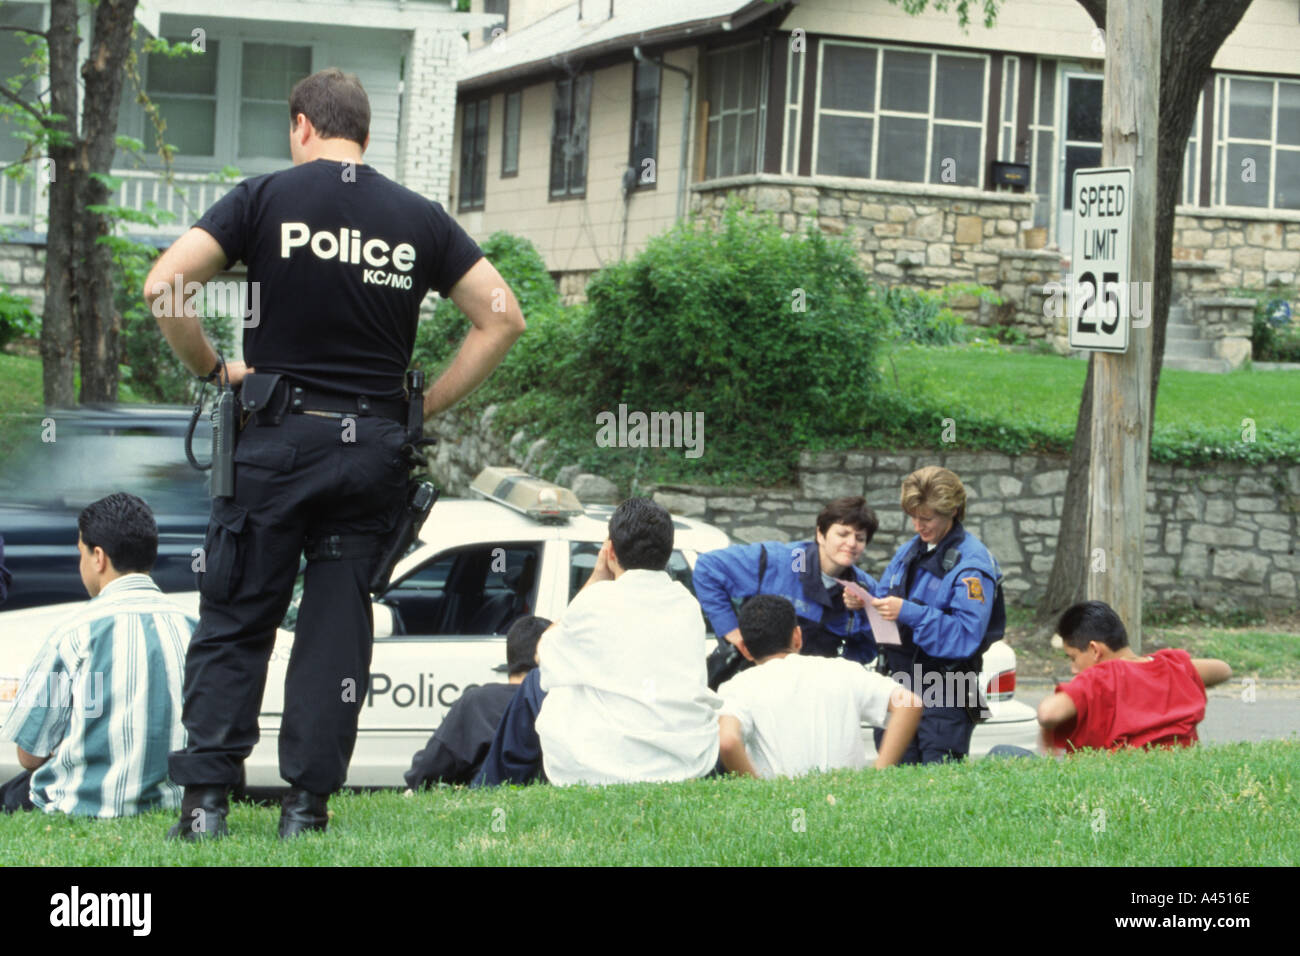 Police officer with a group of suspected gang members. Kansas City, MO, PD, USA. Street Narcotics Unit TAC team. - Stock Image